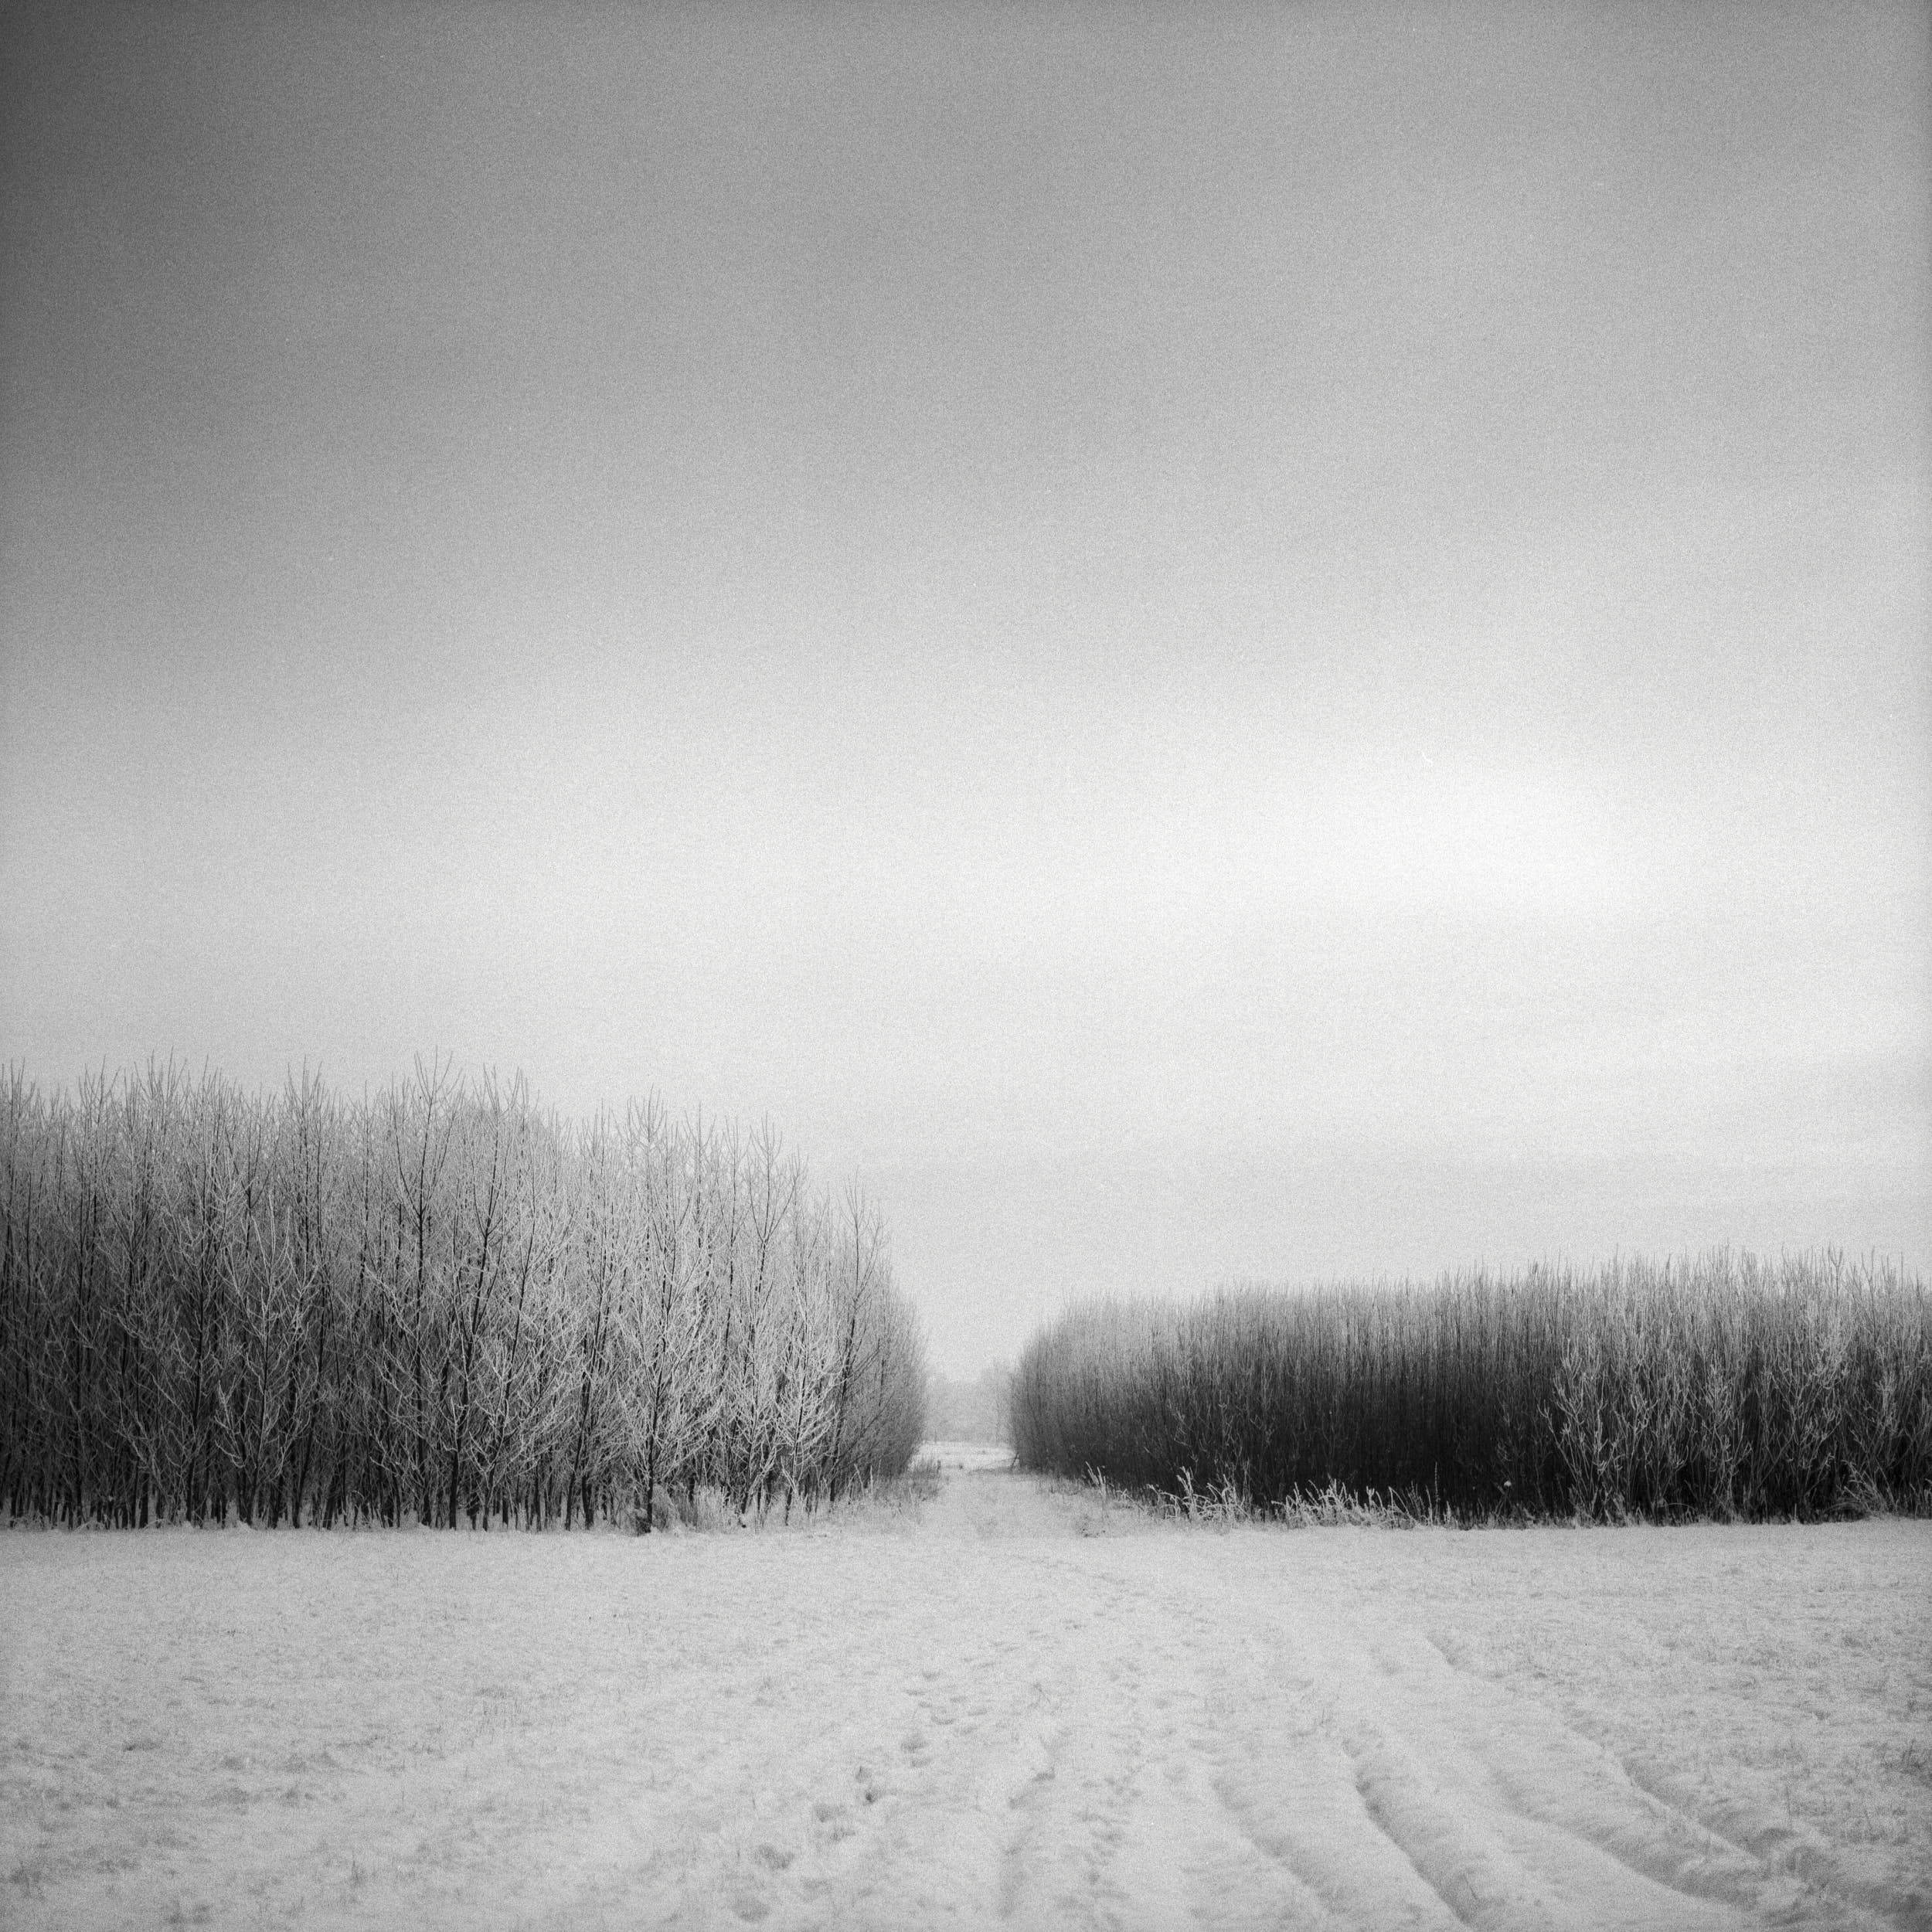 Black and white minimal winter scene with snowy trees shot on medium format film.